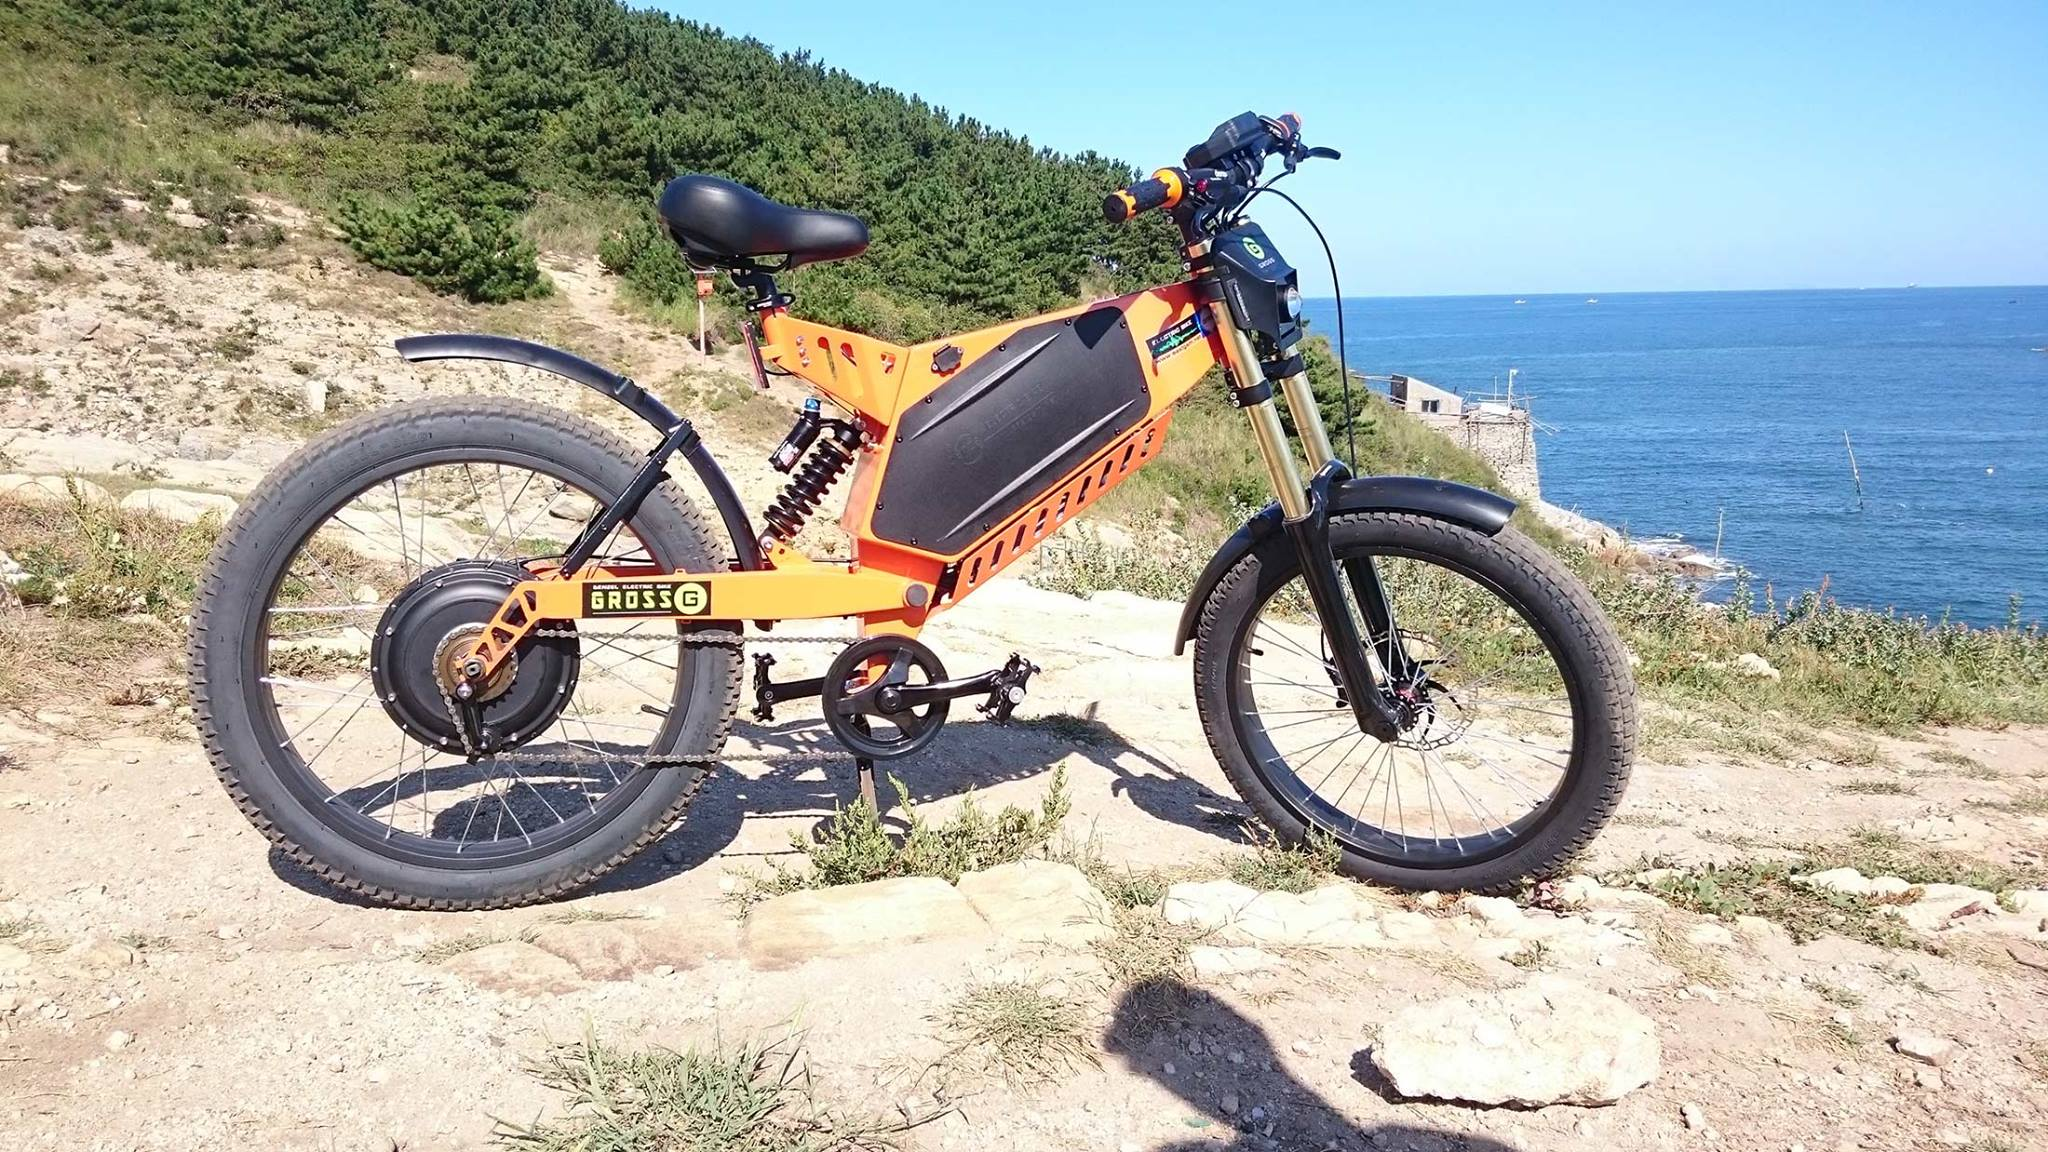 ehlektrovelosiped-kupit'